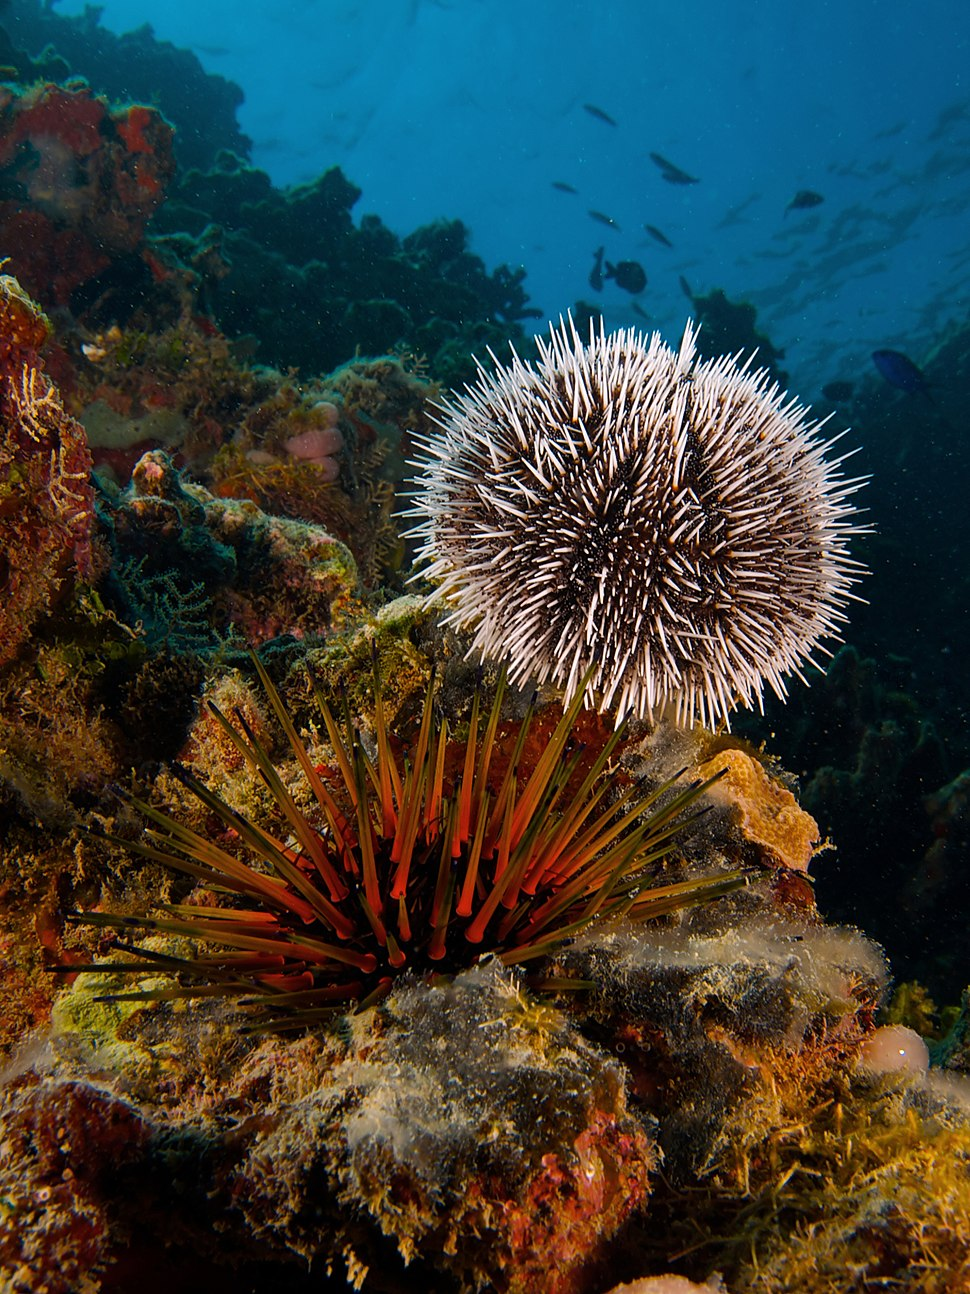 Tripneustes ventricosus (West Indian Sea Egg-top) and Echinometra viridis (Reef Urchin - bottom)